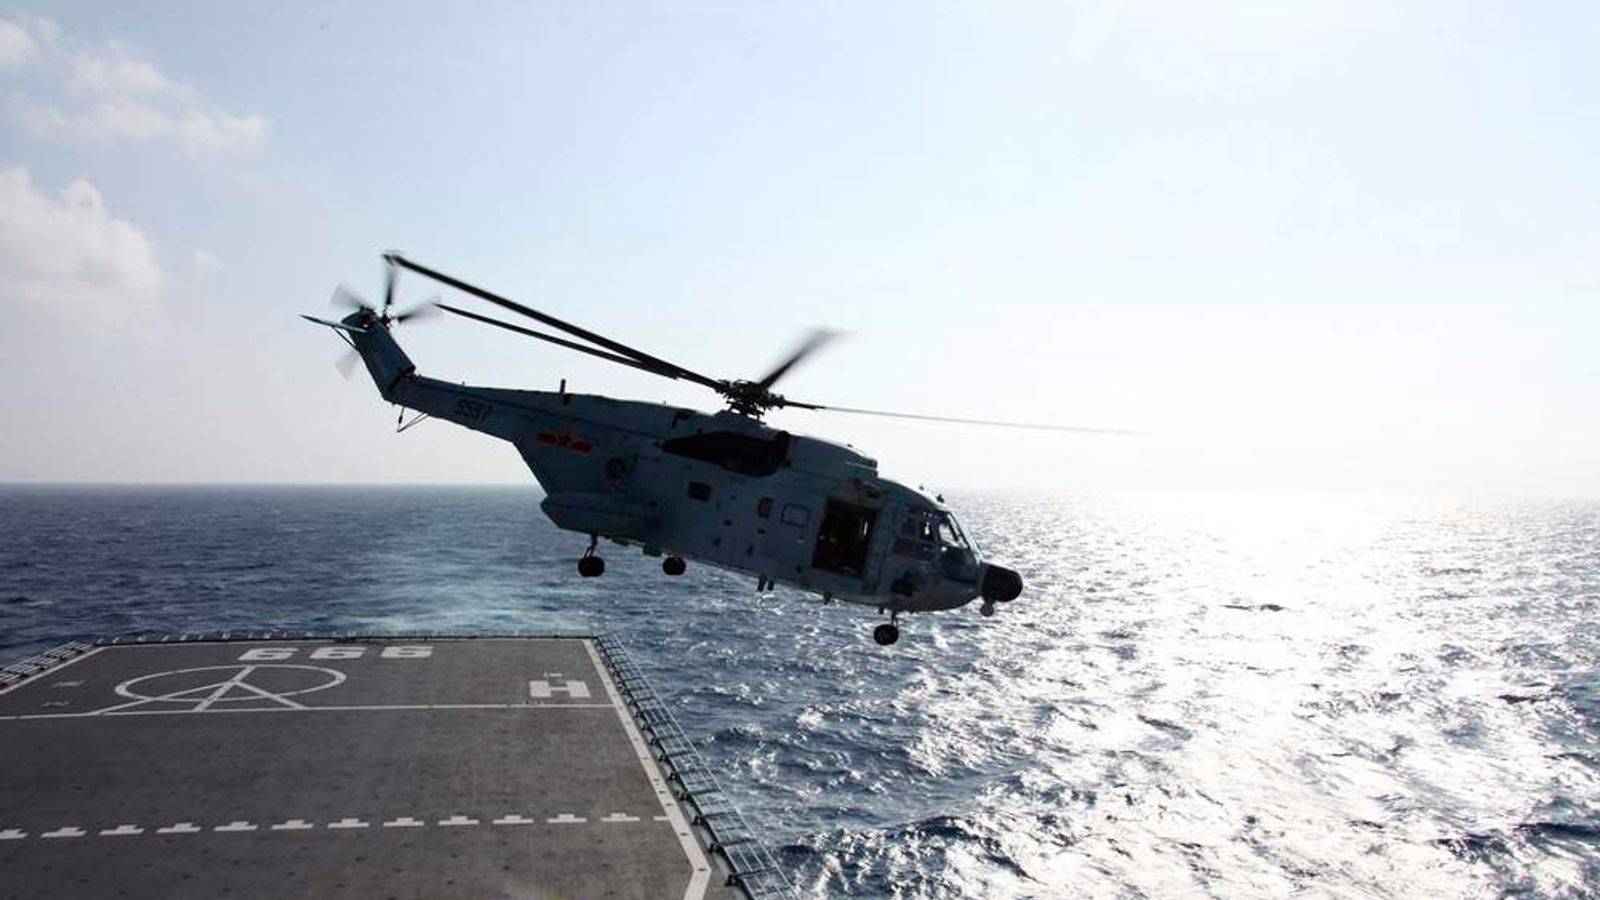 A helicopter takes off from Jinggangshan warship to search the waters suspected to be the site of the missing Beijing-bound Malaysia Airlines flight MH370.